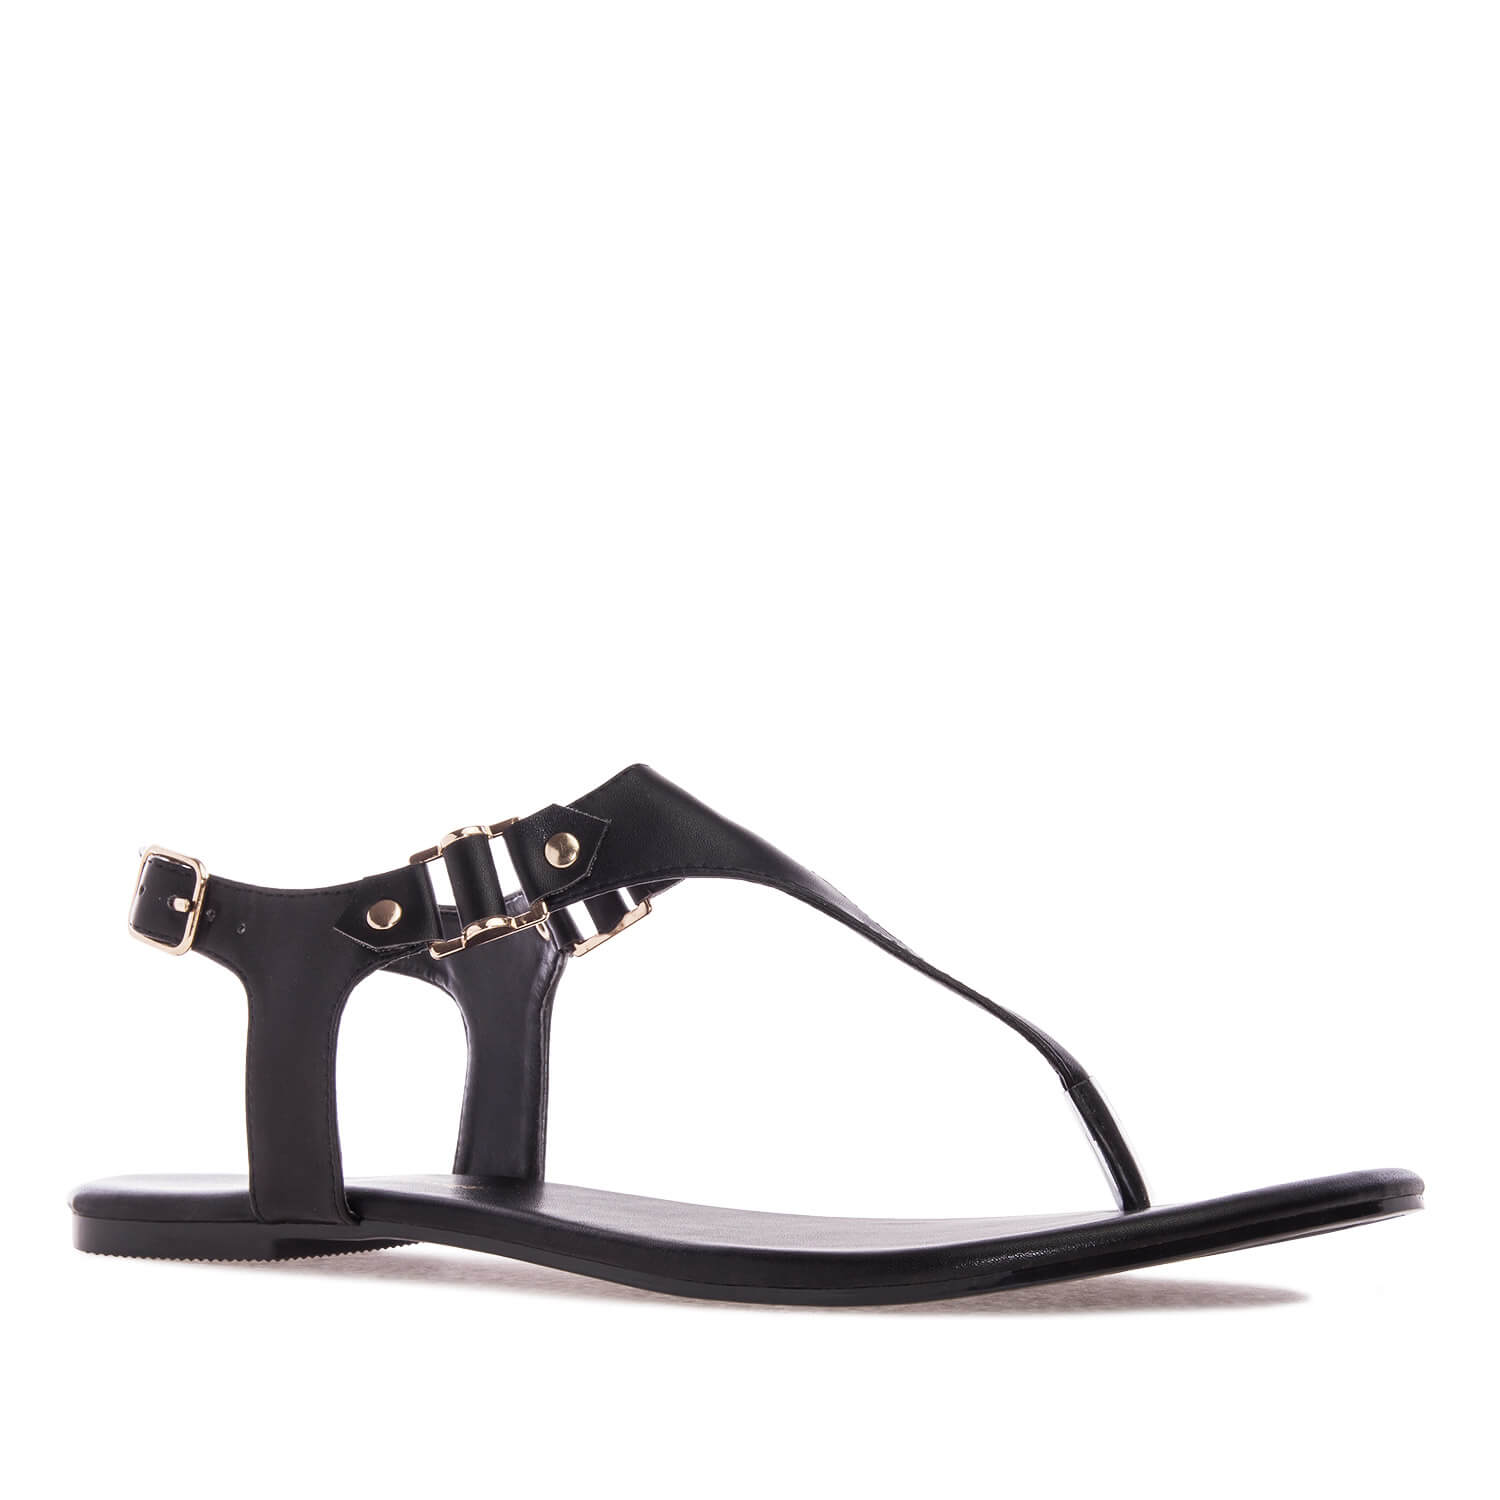 Sandalias t-bar en Soft de color Negro.